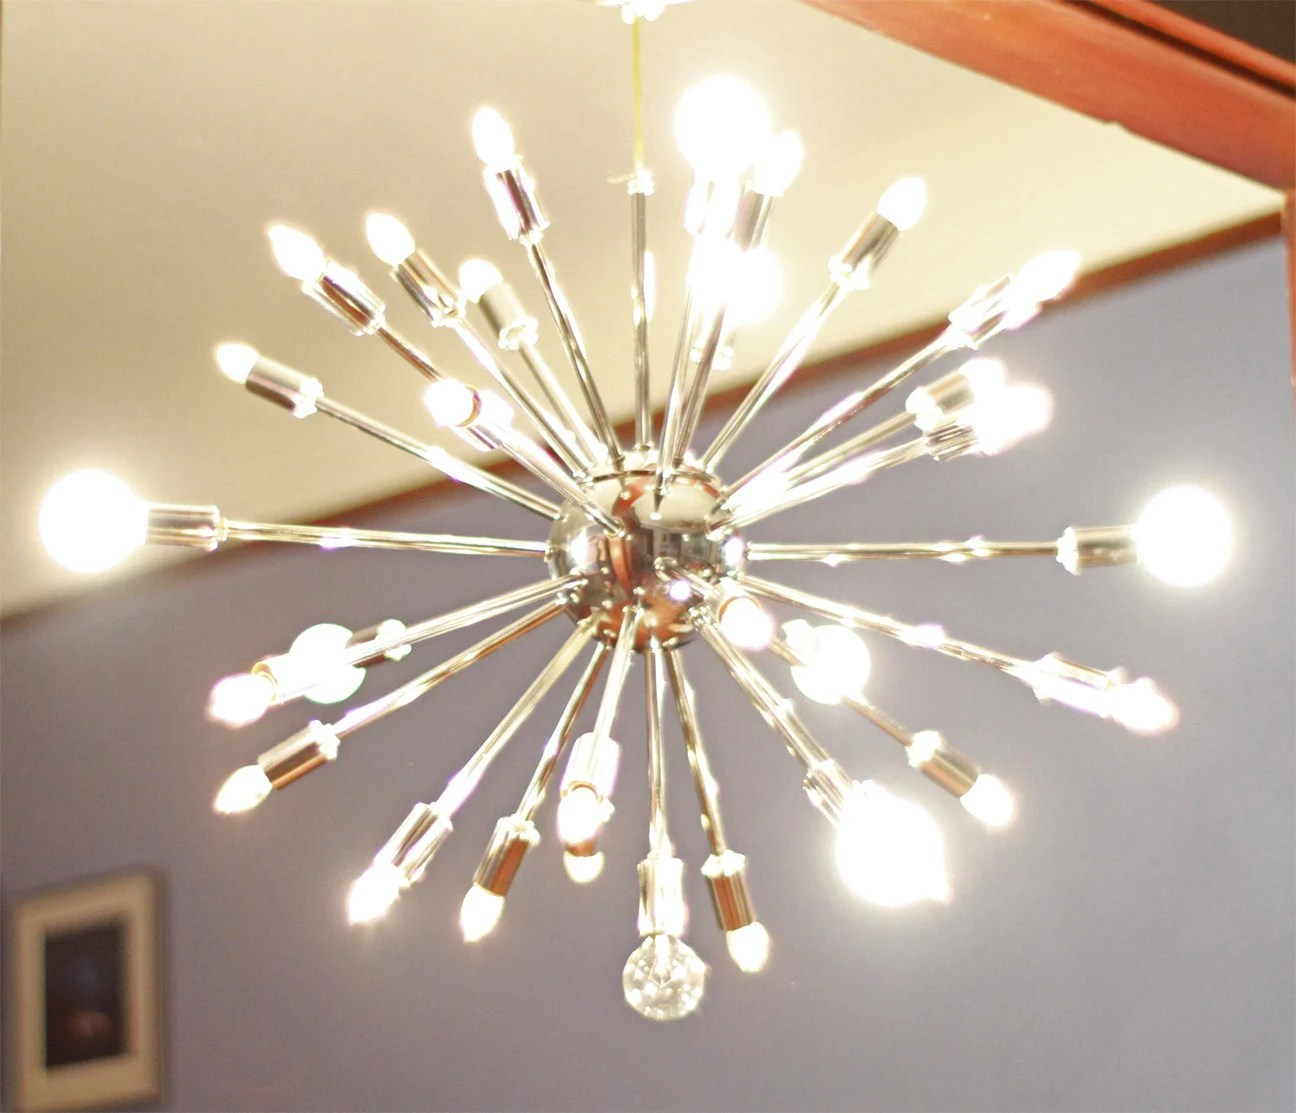 Modern Vintage Lights Vintage Sputnik Chandelier Mid Century Modern Lighting